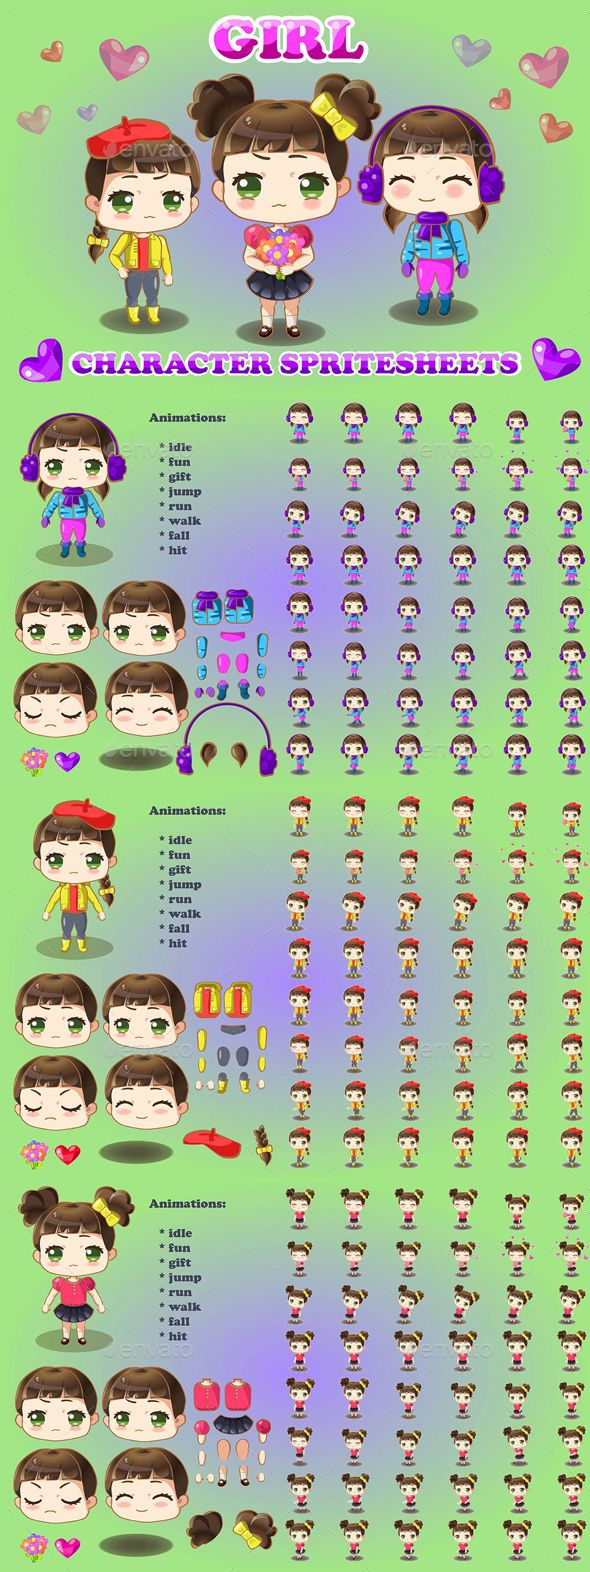 Here Is A Collection Of 2d Game Chibi Girl Character Sprite Sheet